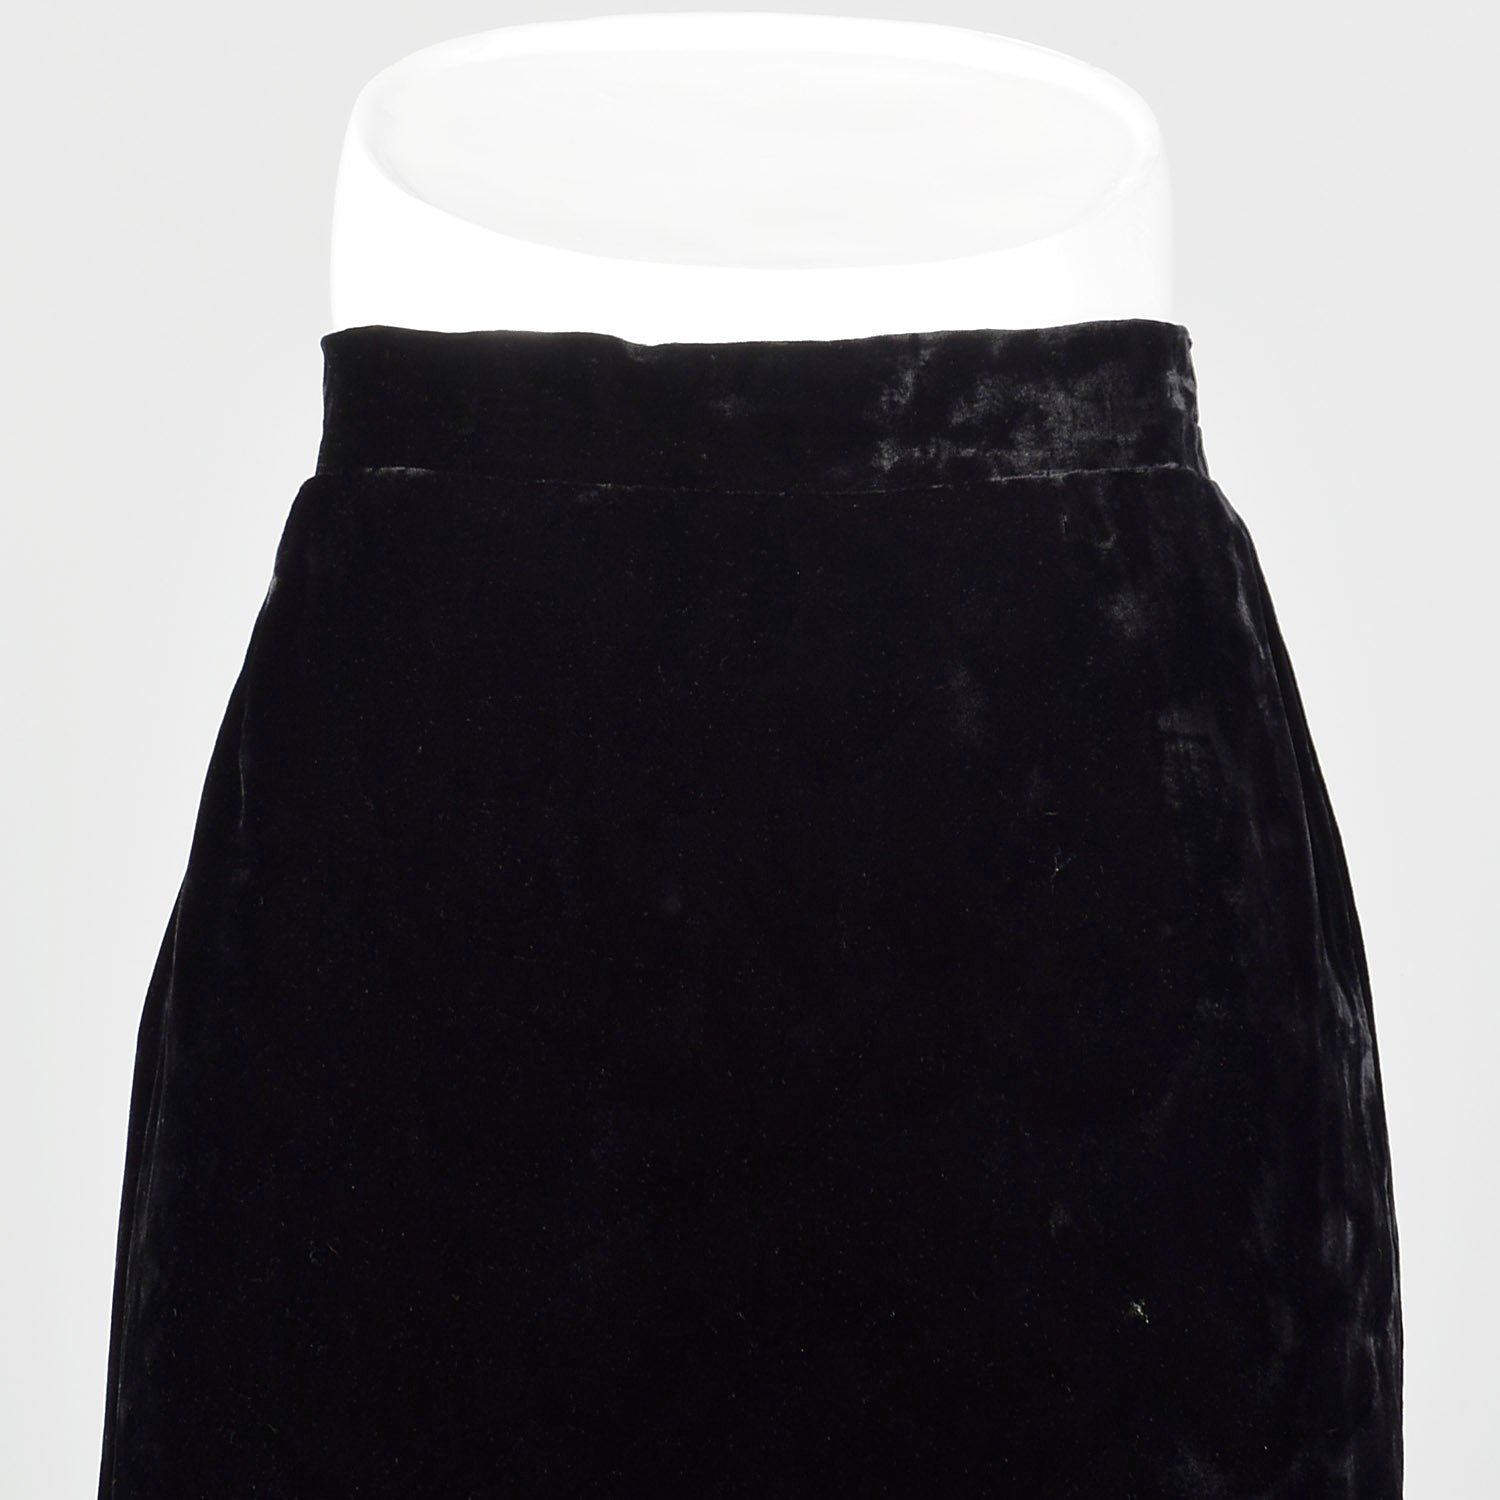 Large Gianfranco Ferre Black 1980s Velvet Pencil Skirt